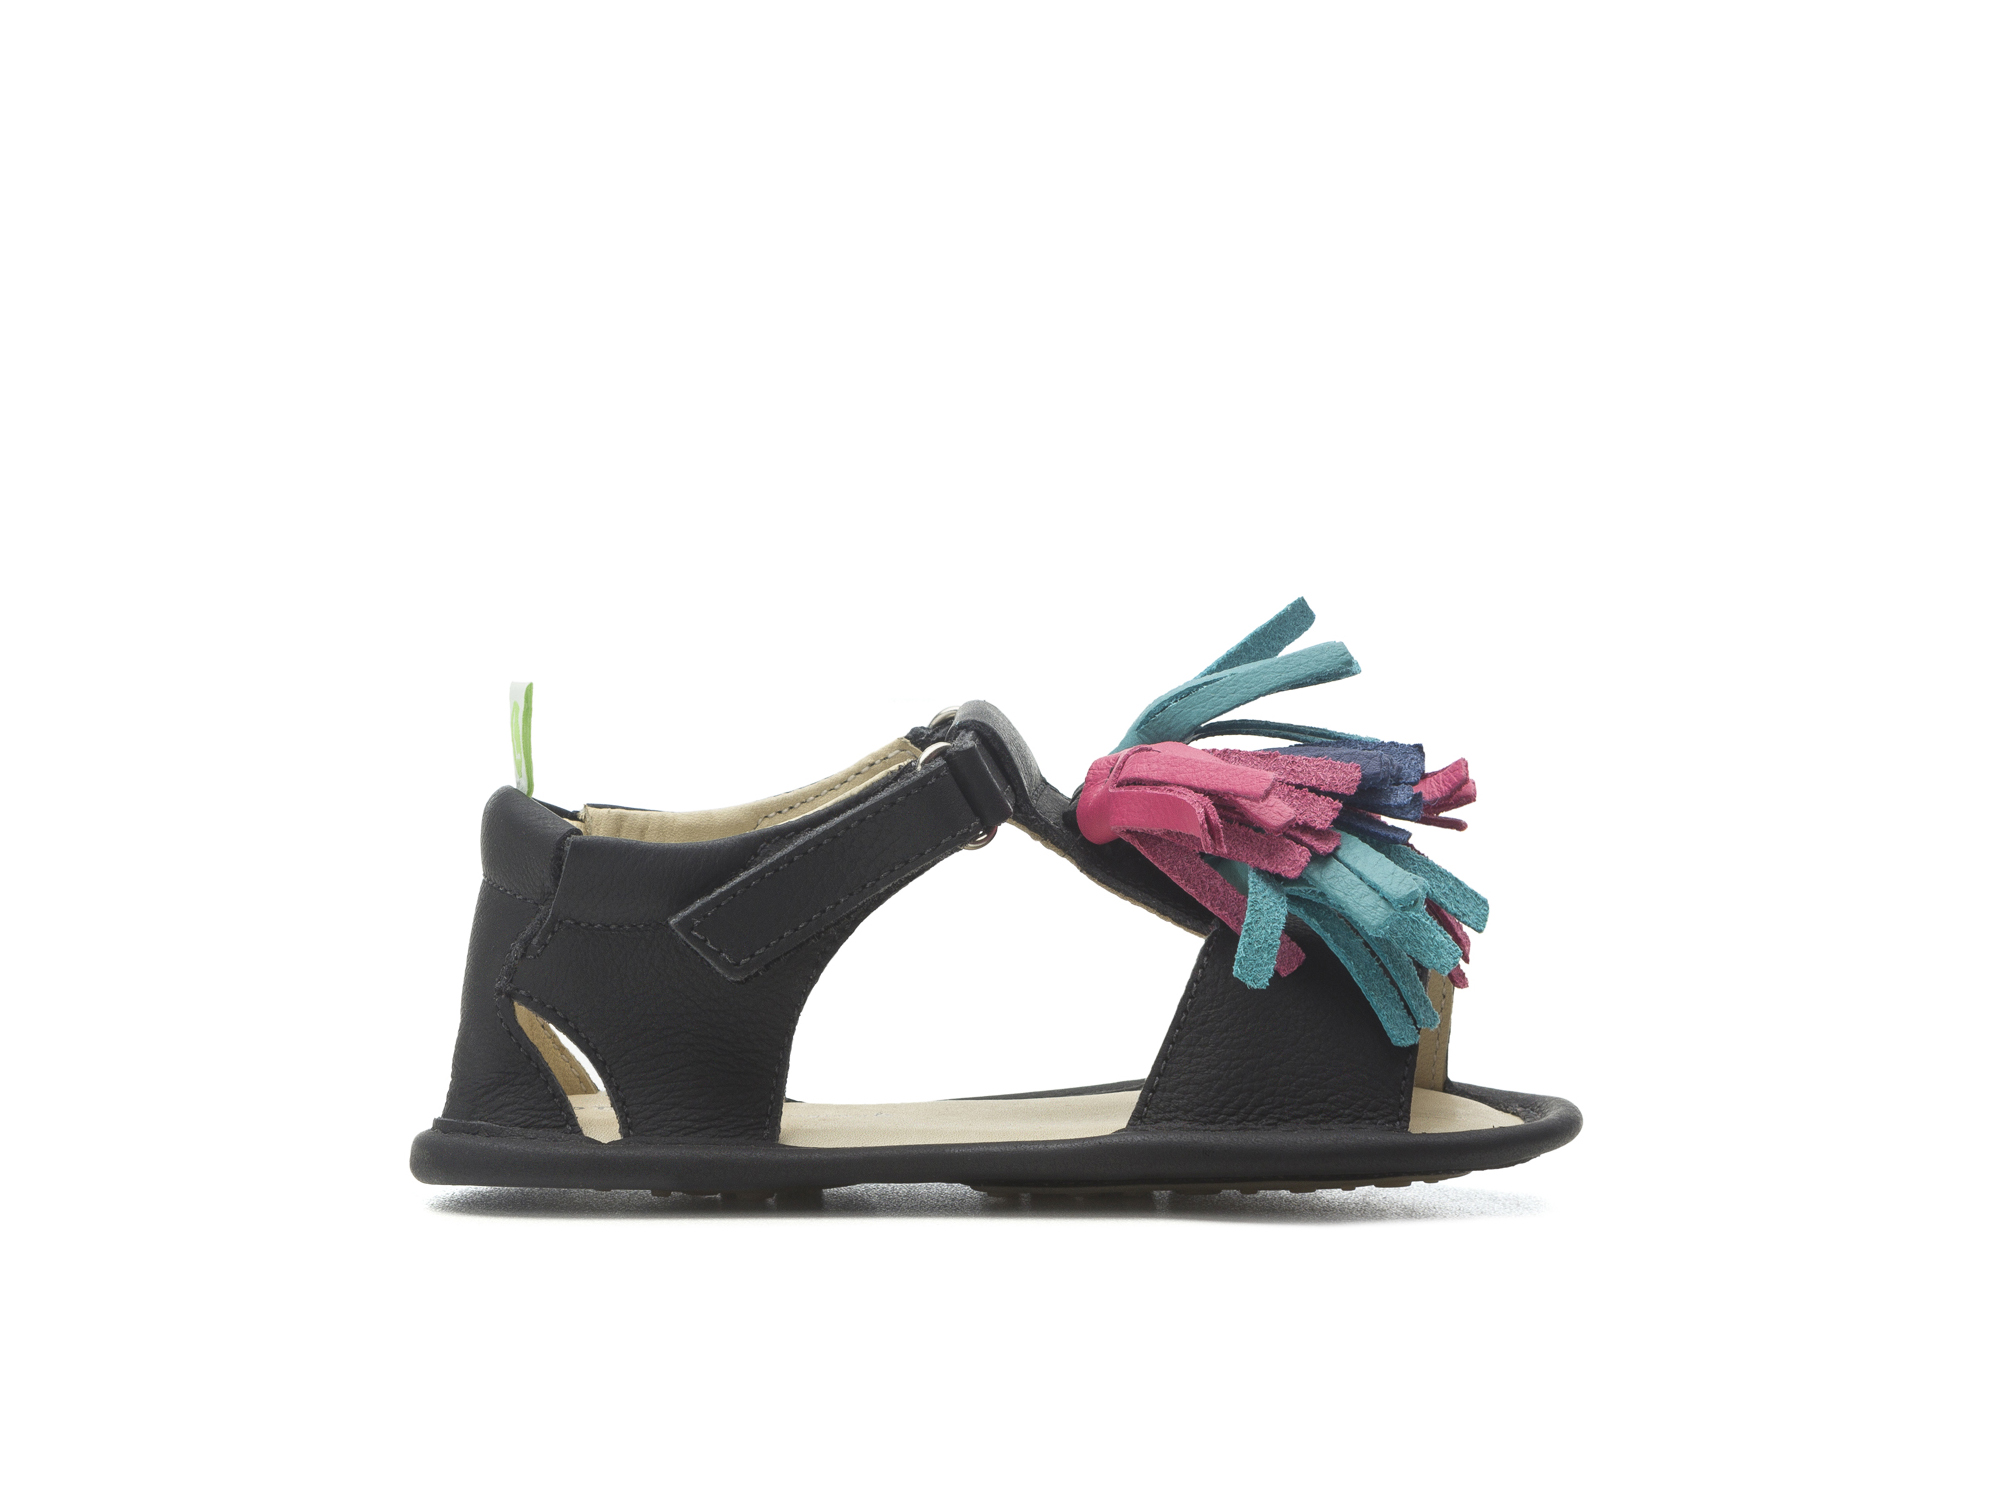 Sandal Folksy Black/ Tutti Frutti Baby for ages 0 to 2 years - 1